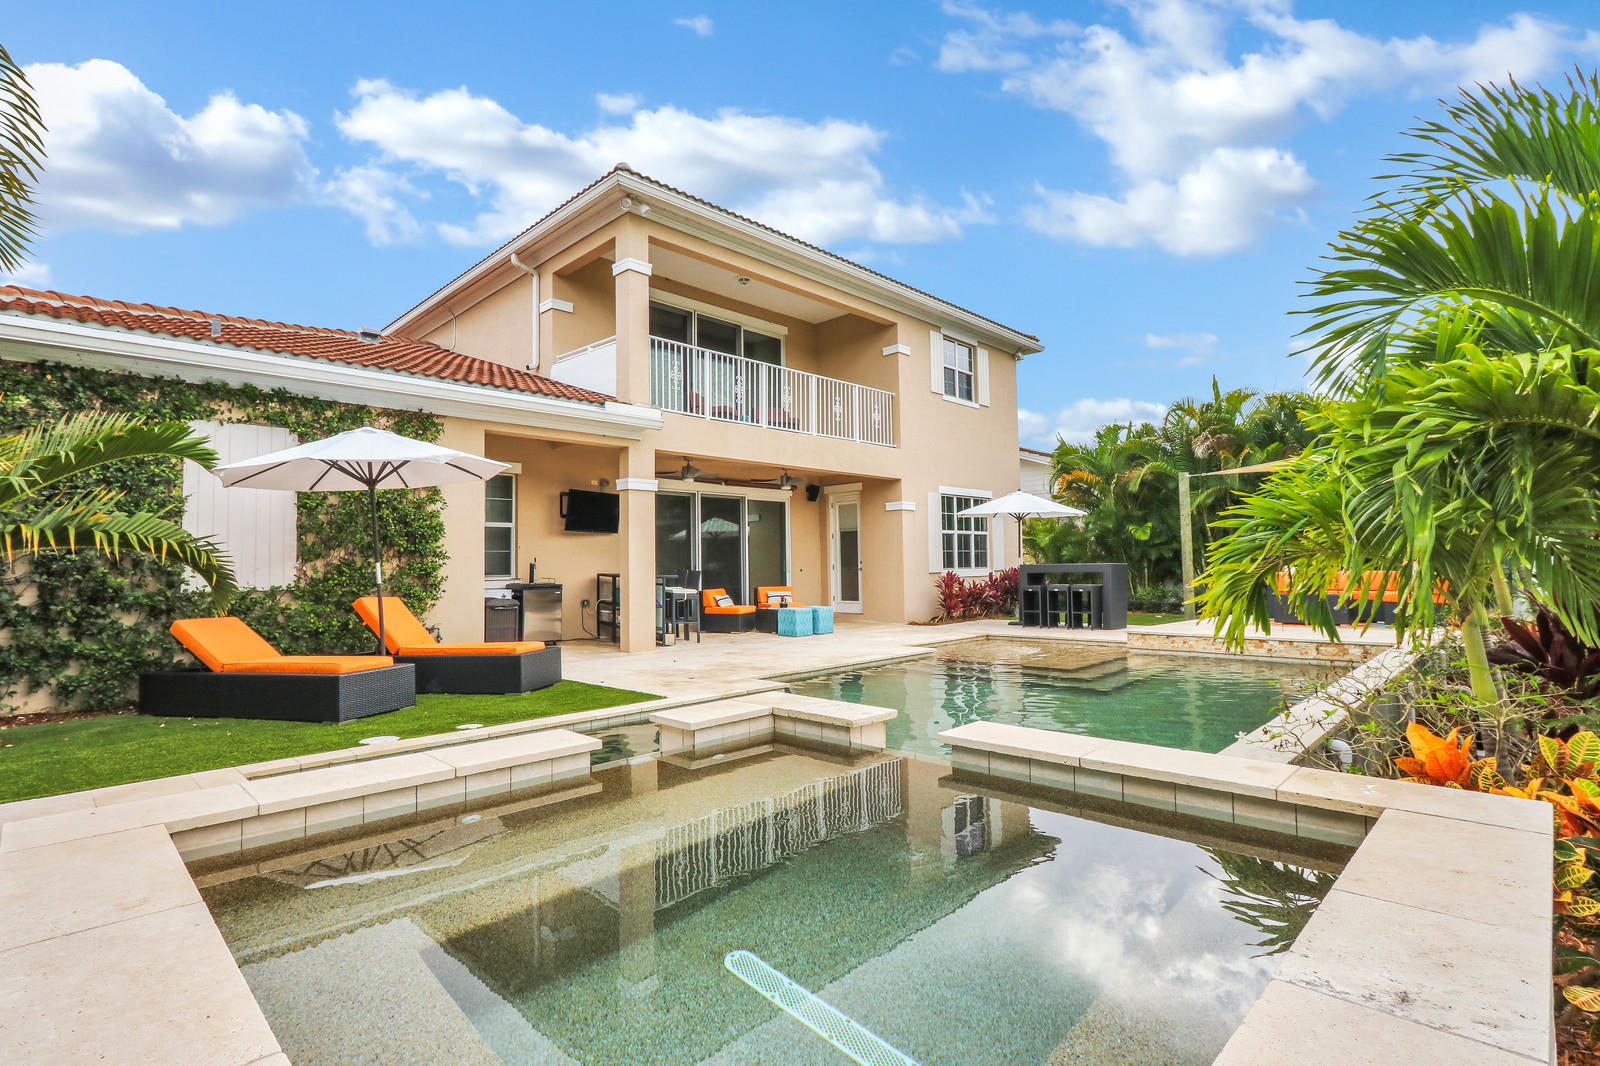 2740 Wymberly Drive, Jupiter, Florida 33458, 5 Bedrooms Bedrooms, ,4.1 BathroomsBathrooms,A,Single family,Wymberly,RX-10483159